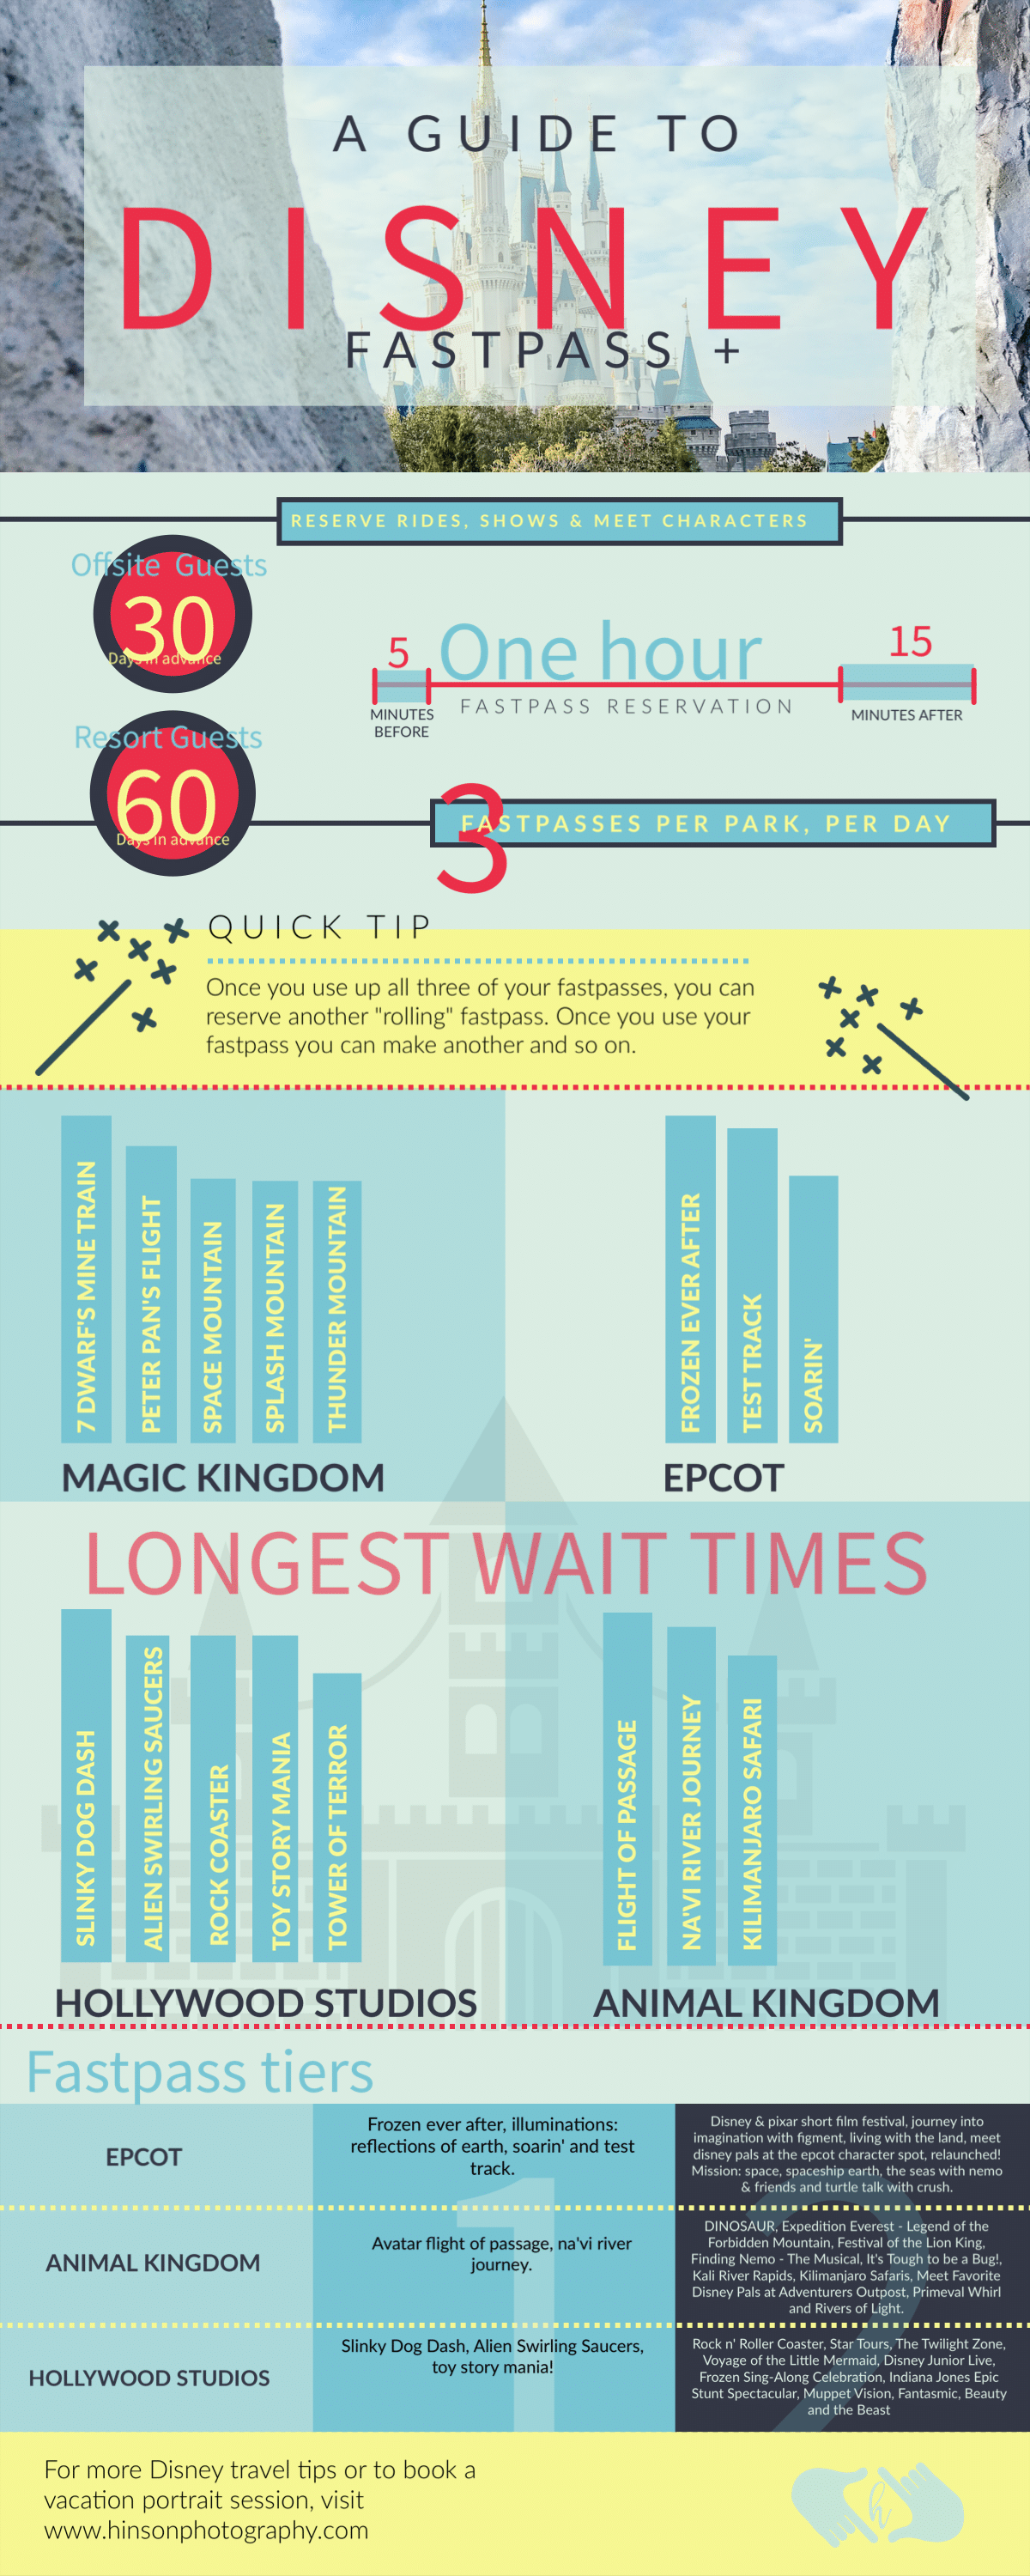 Fastpass Disney tips infographic